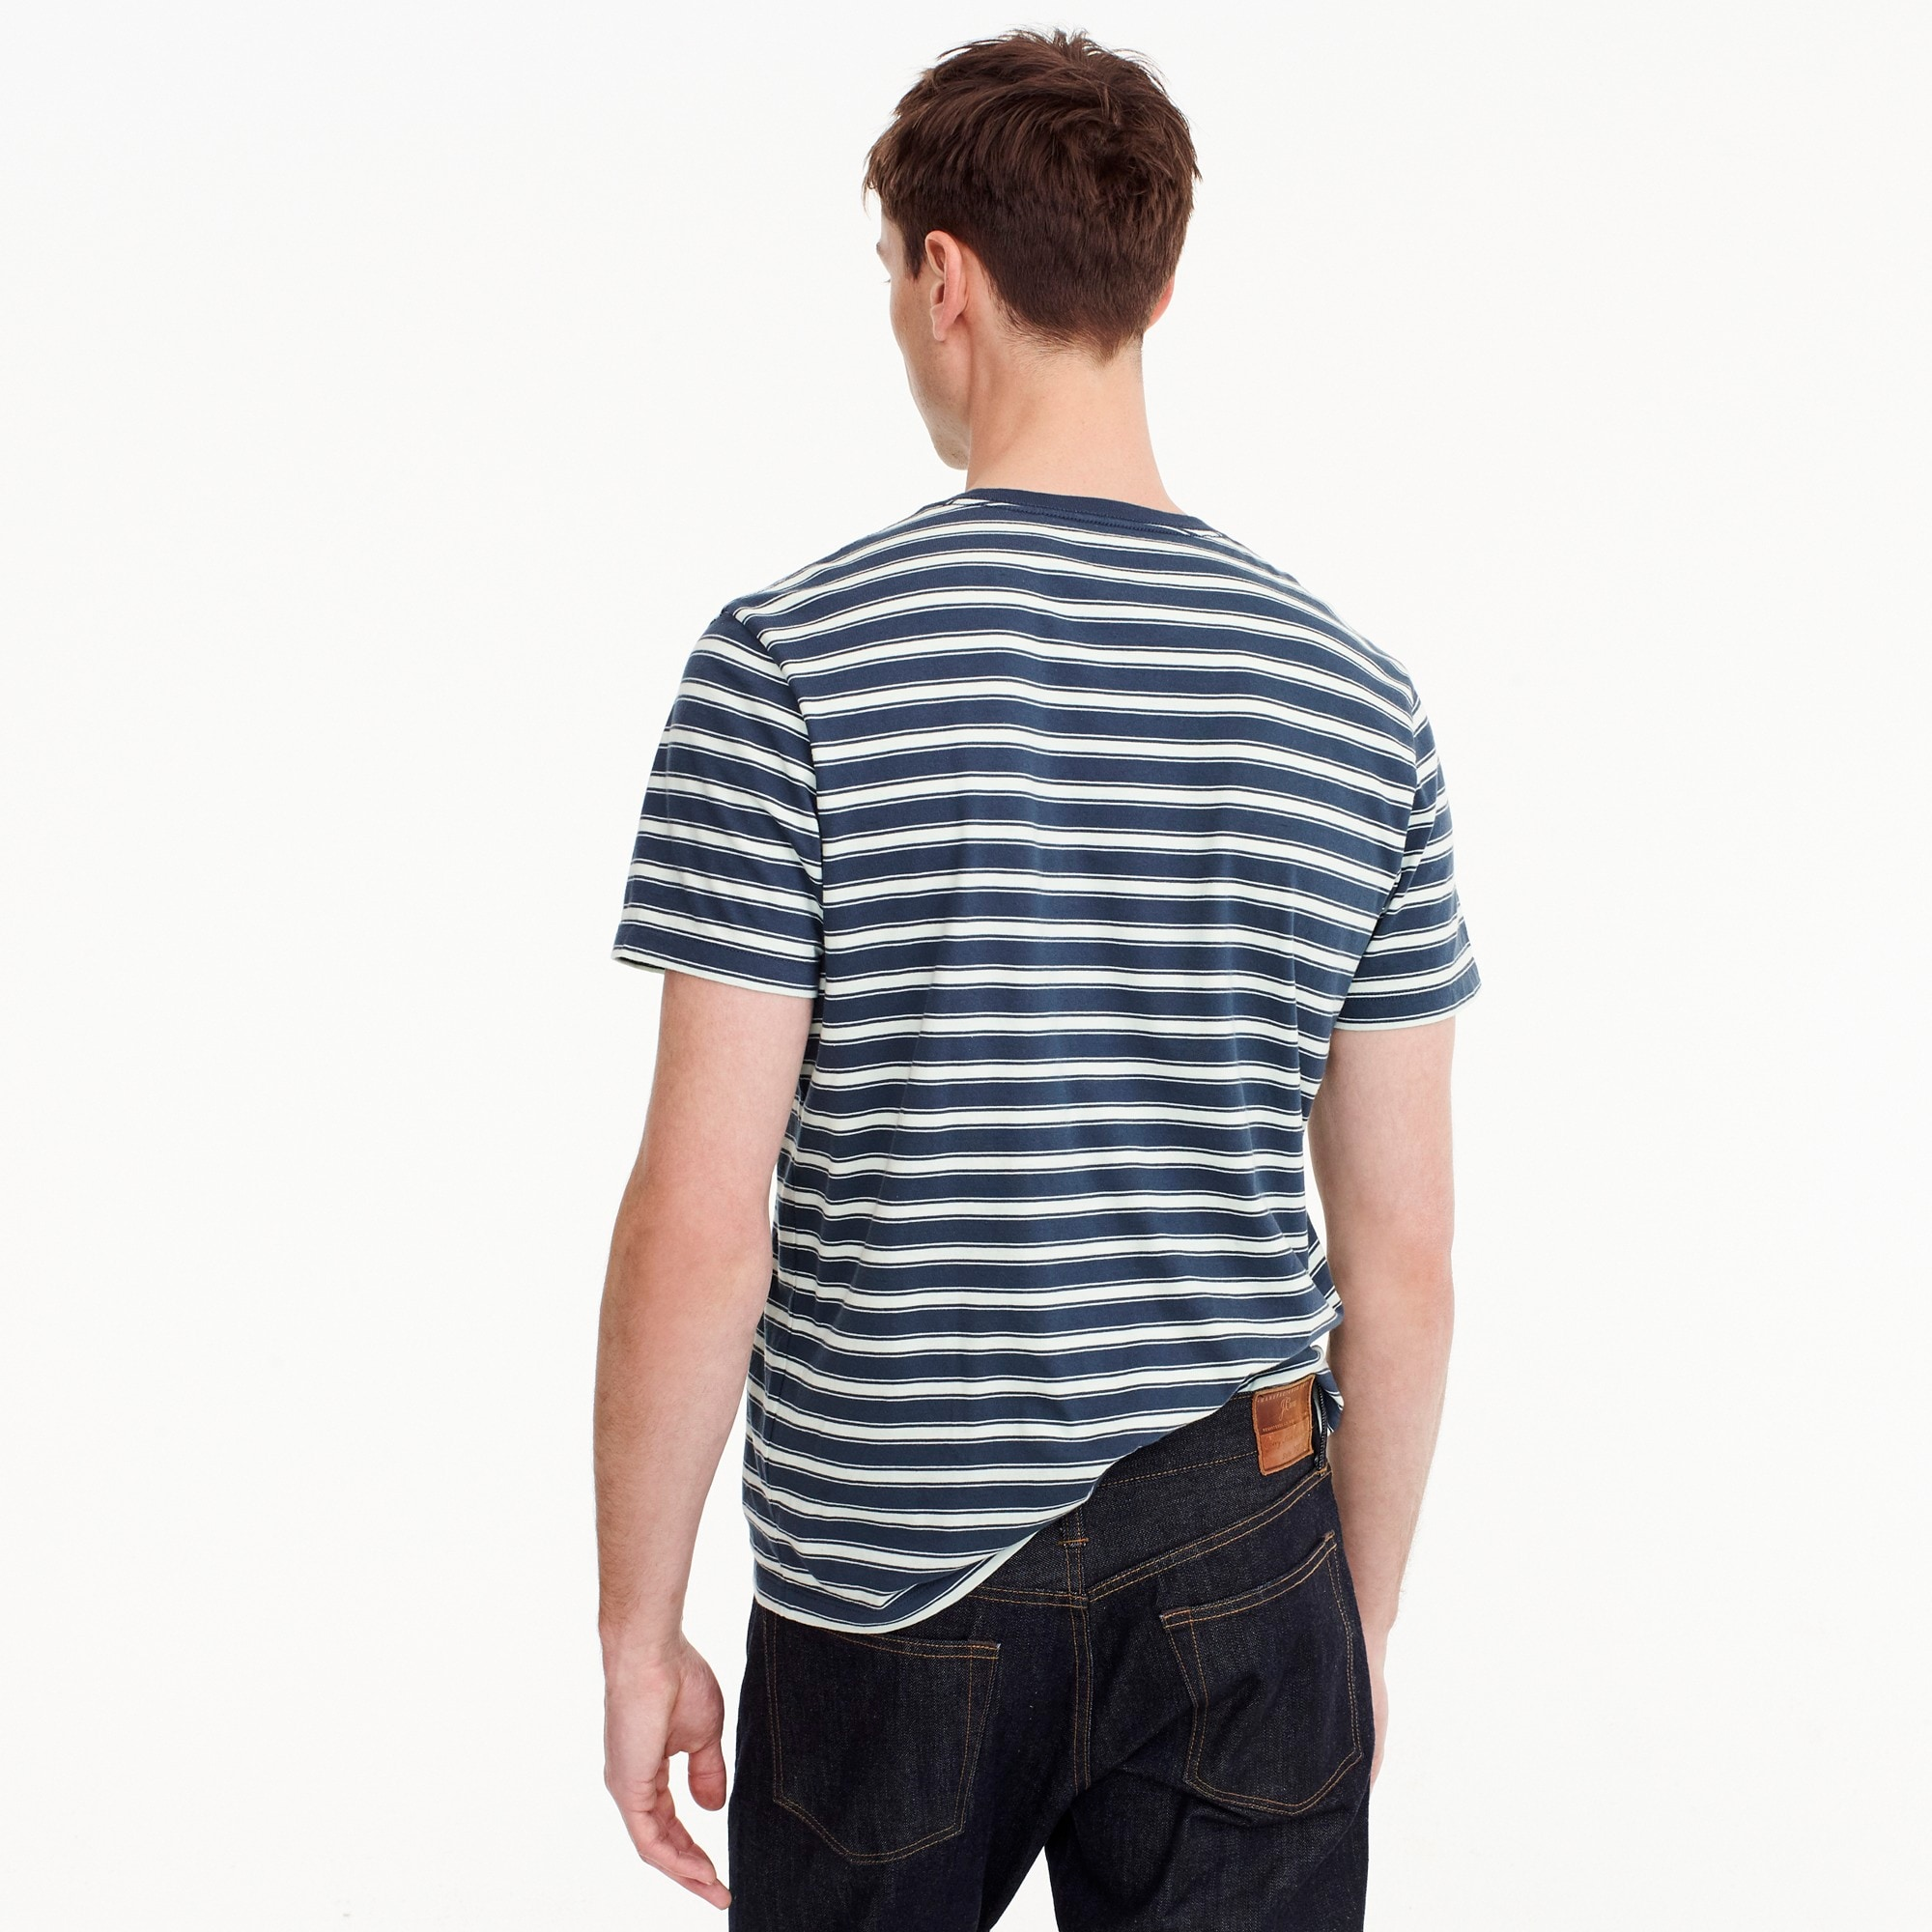 Image 3 for Tall J.Crew Mercantile Broken-in T-shirt in navy stripe